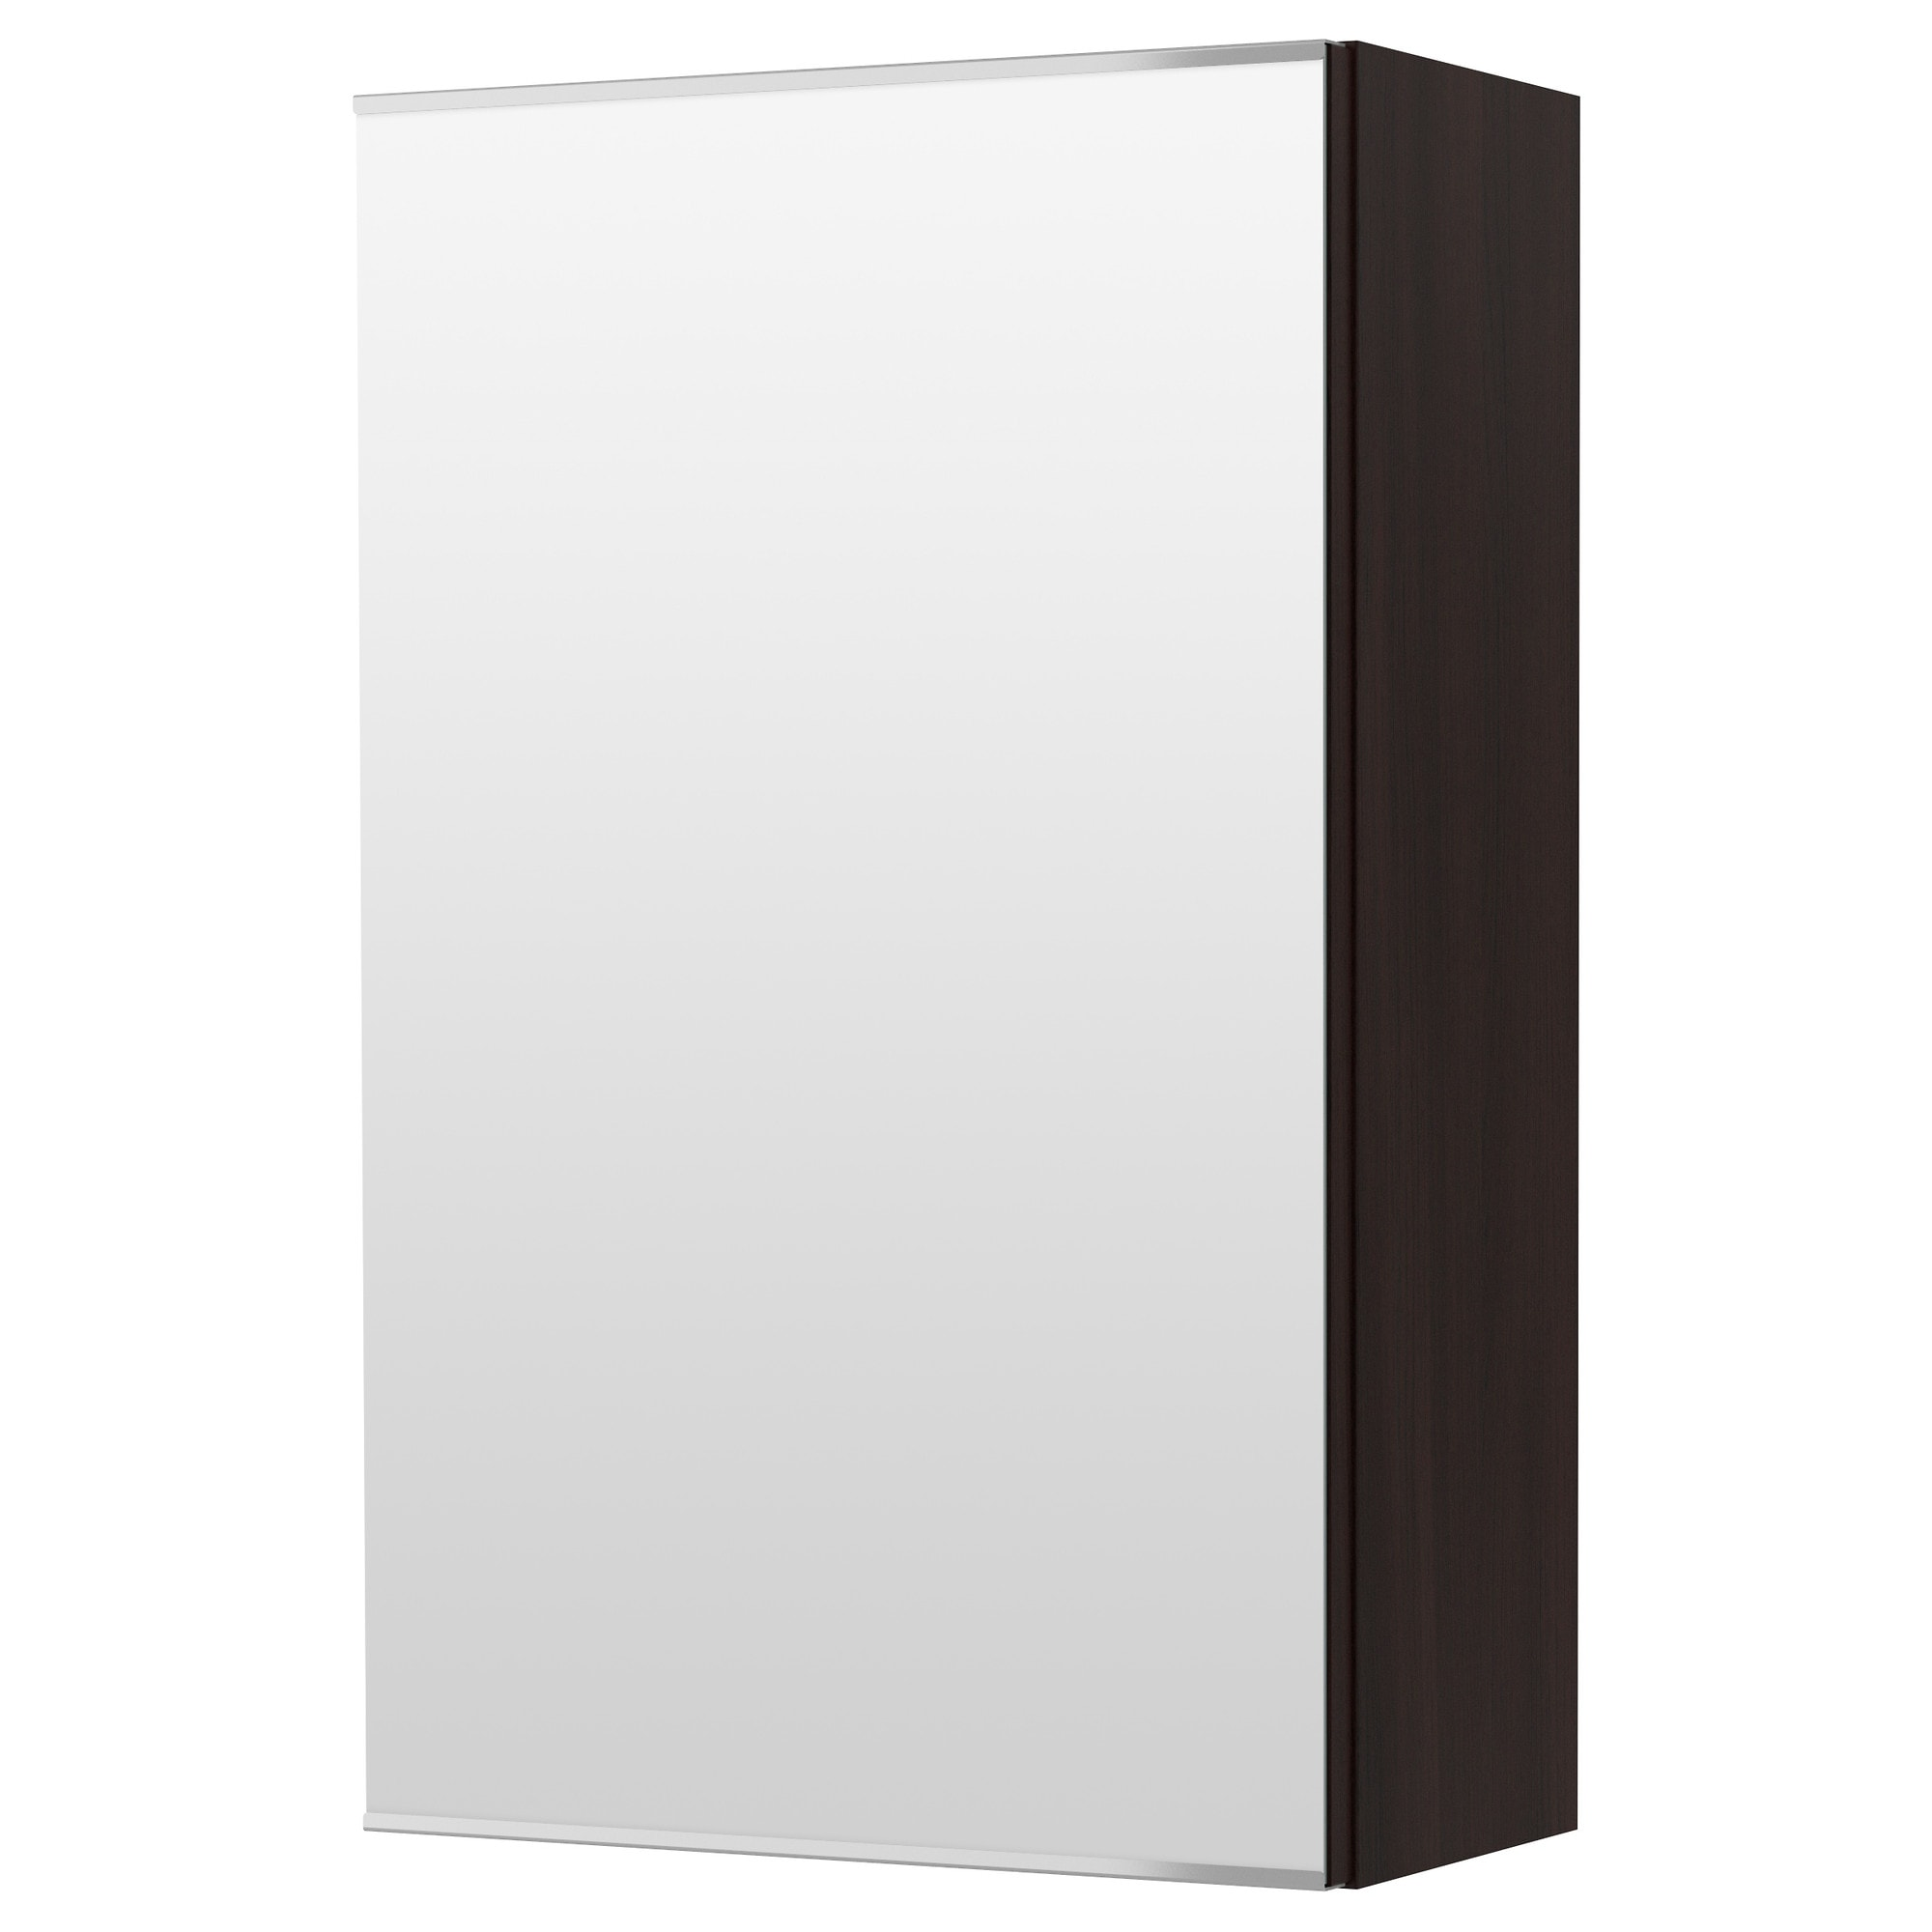 LILLNGEN Mirror Cabinet With 1 Door Black Brown Width 15